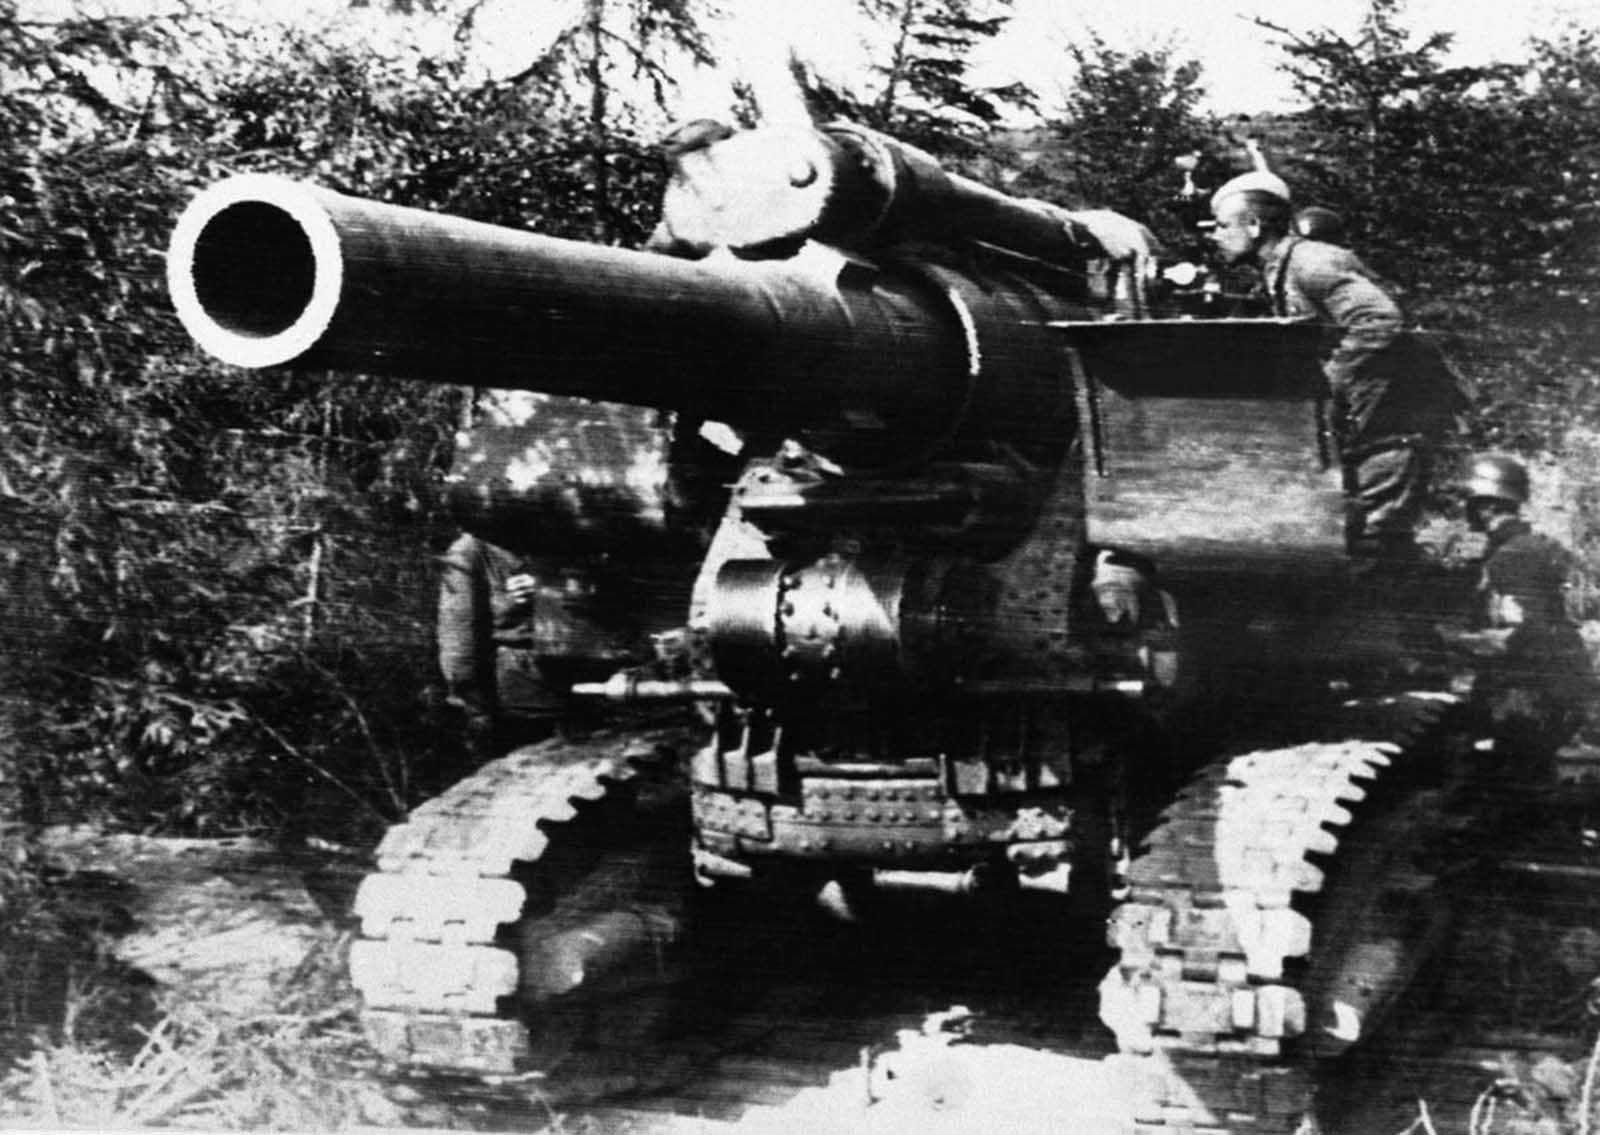 A huge Russian gun on tracks, likely a 203 mm howitzer M1931, is manned by its crew in a well-concealed position on the Russian front on September 15, 1941.